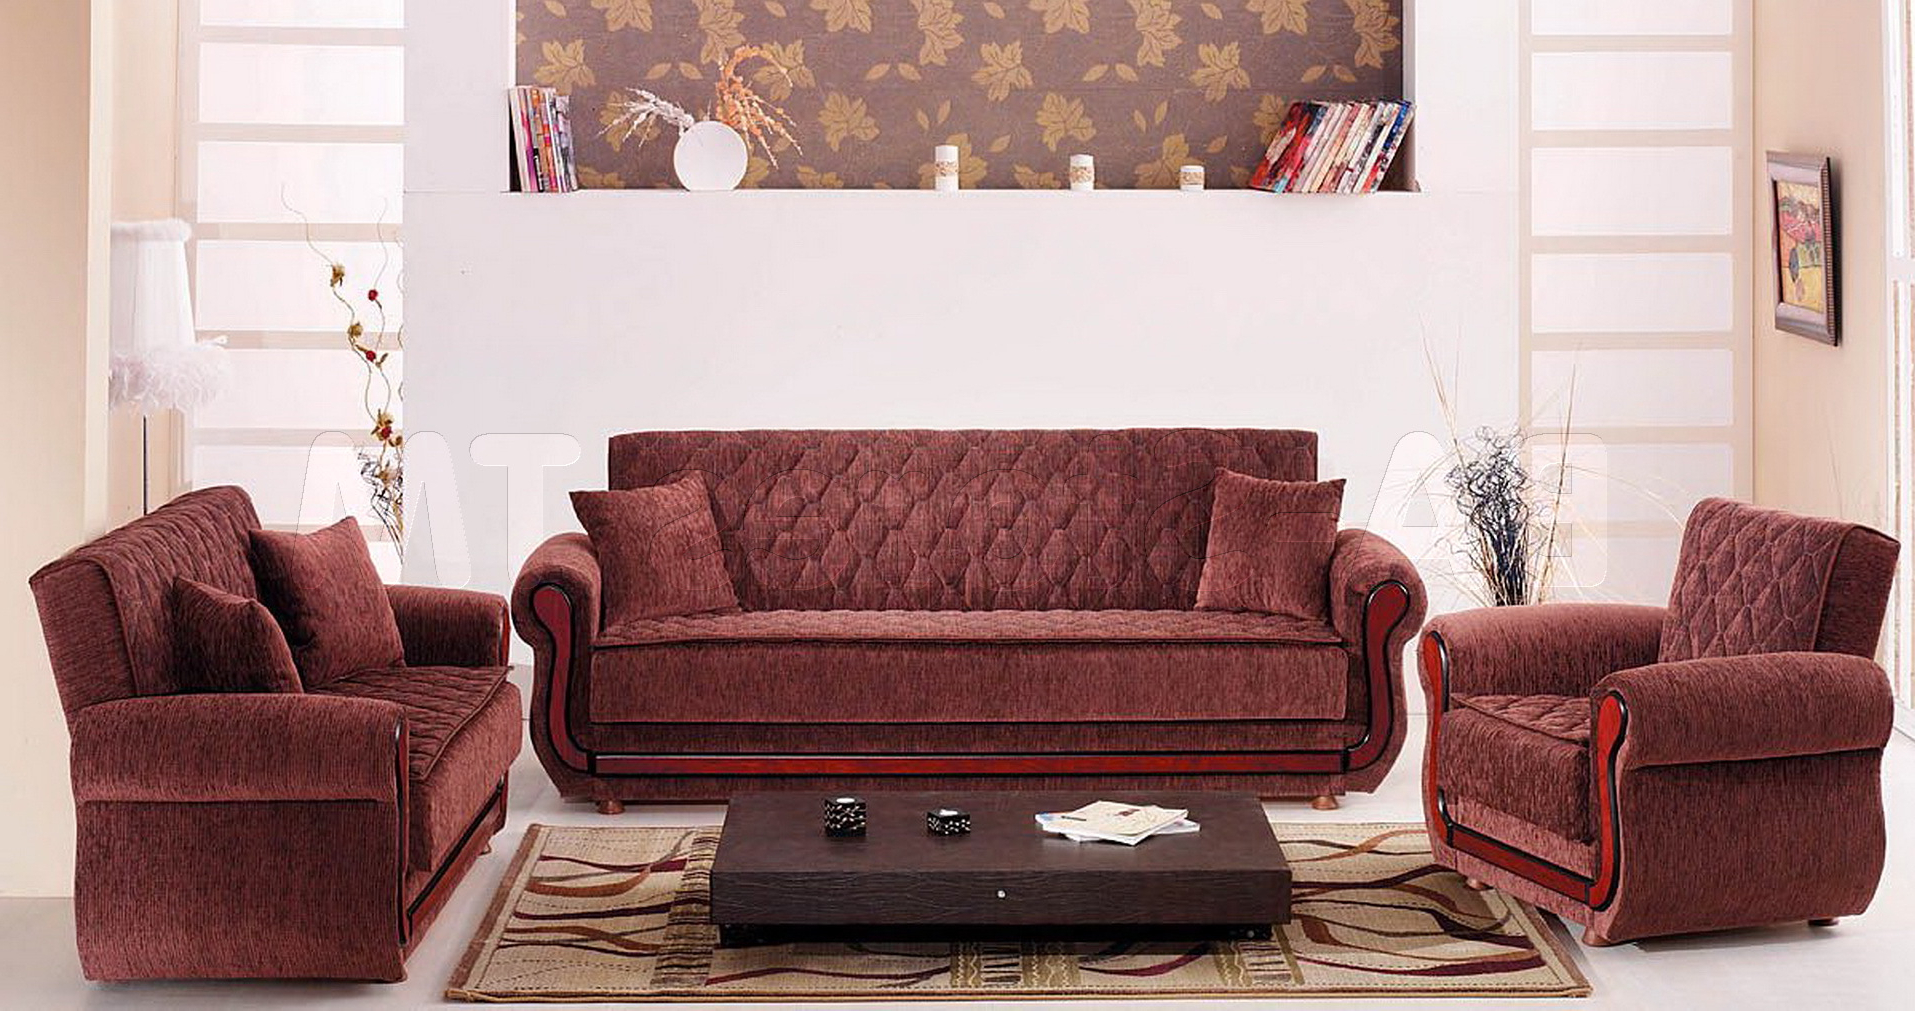 Sunrise Sofa Loveseat Chair Set Sets With Chairs Living Room Sofa With Latest Sofa Loveseat And Chair Set (Gallery 10 of 20)